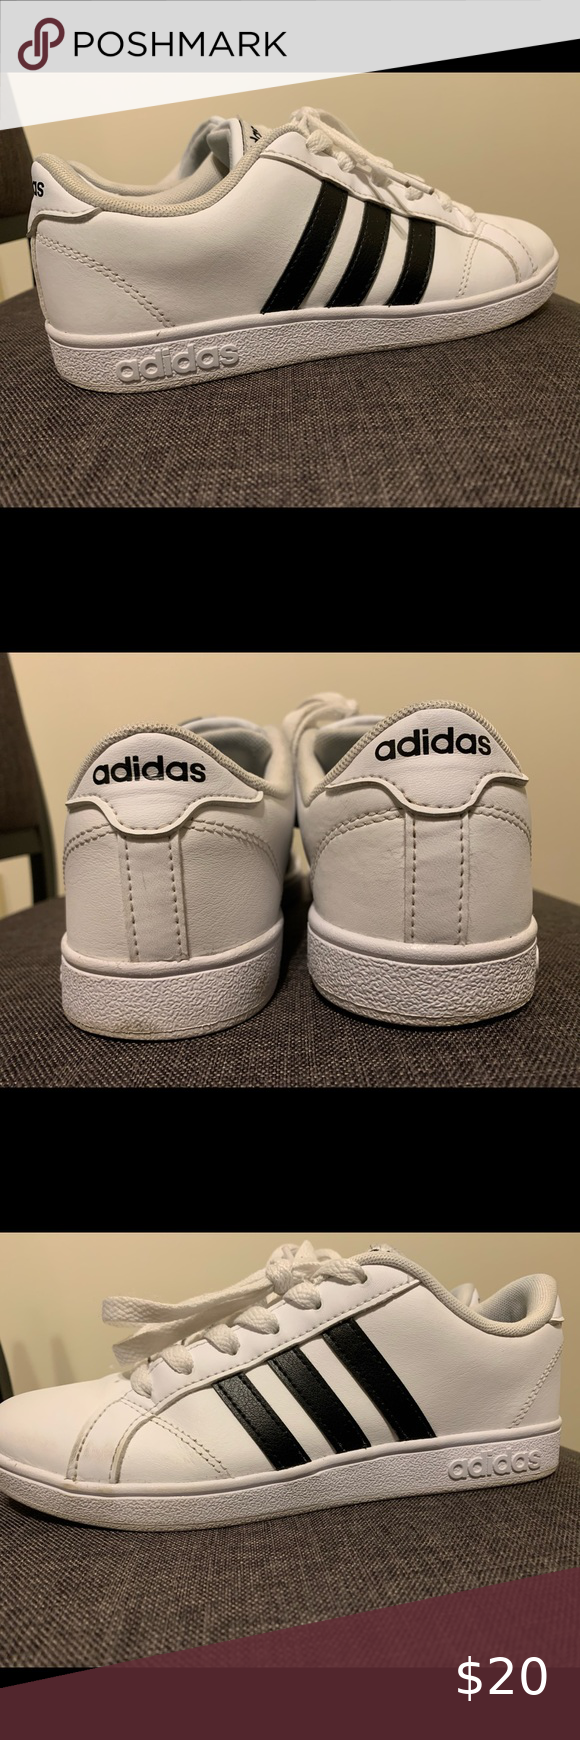 Adidas Neo Baseline Sneakers Youth Size